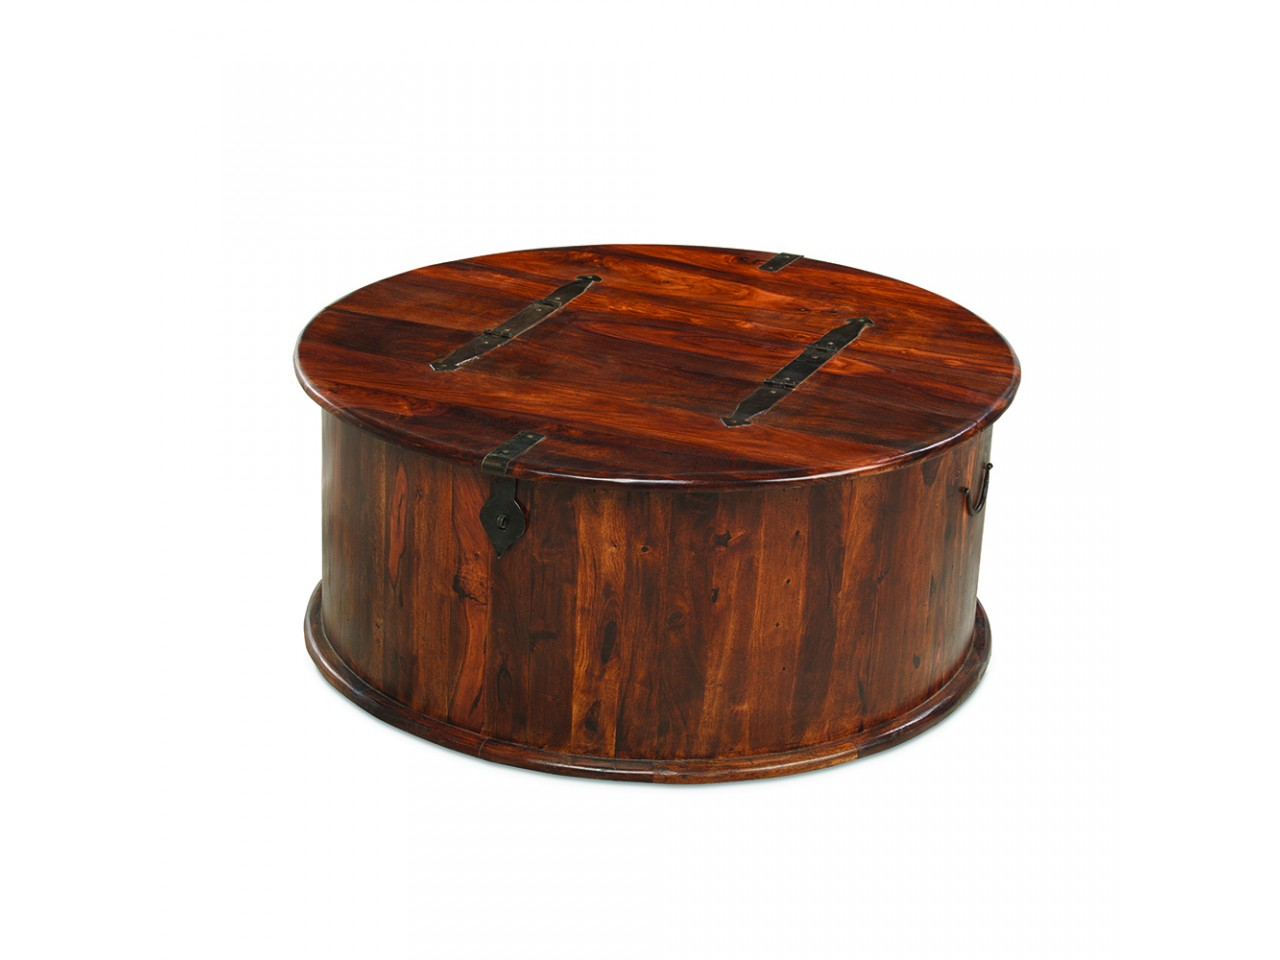 Free Shape Of Round Trunk Coffee Table Round Shape Ideas (Image 4 of 10)